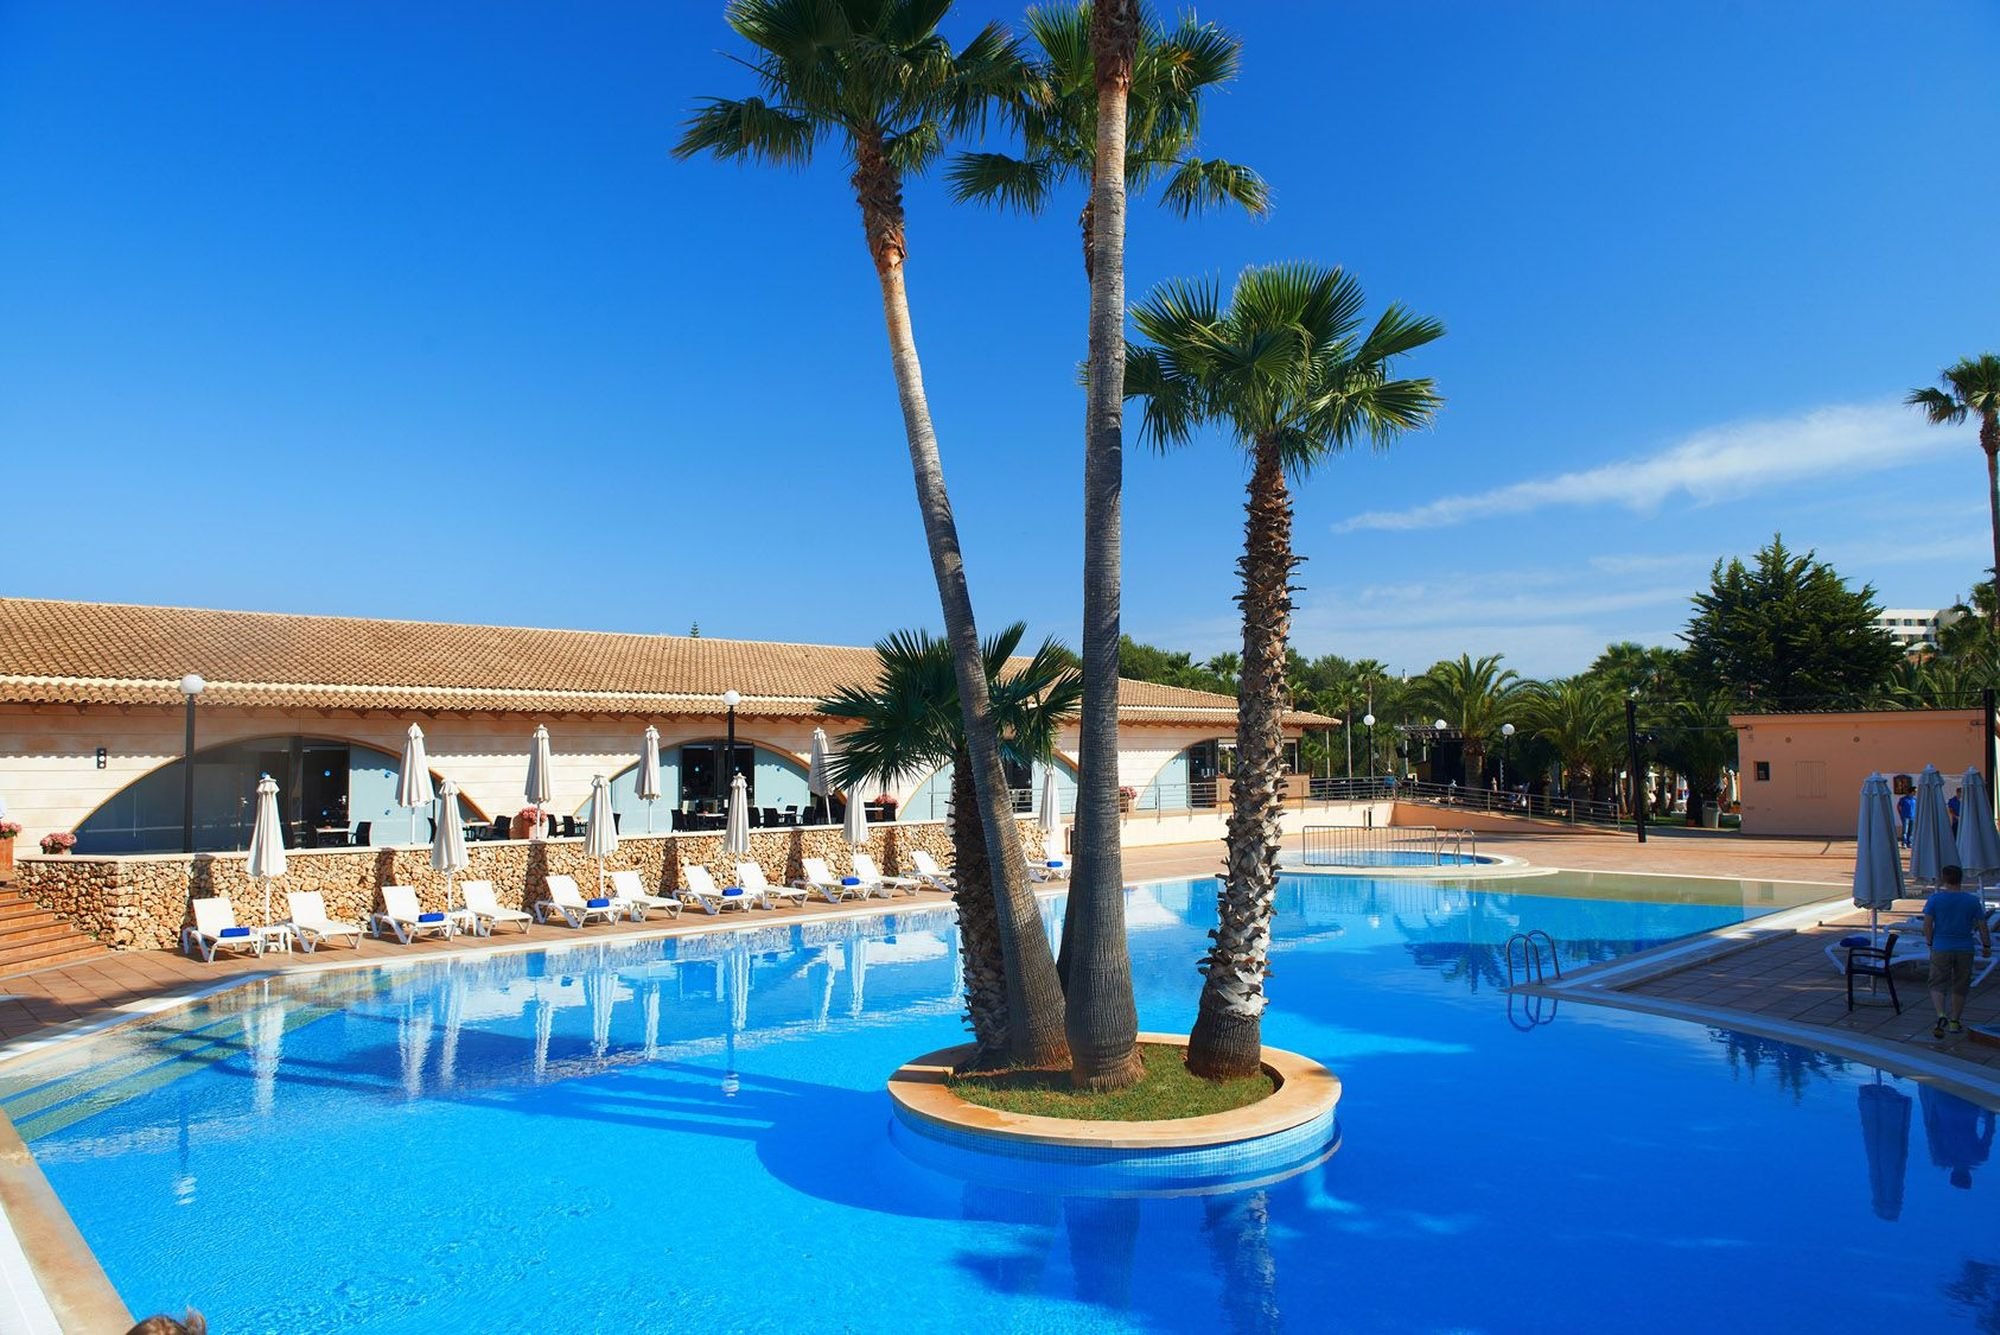 Hipotels Mediterr 225 Neo Club Photo Gallery Majorca